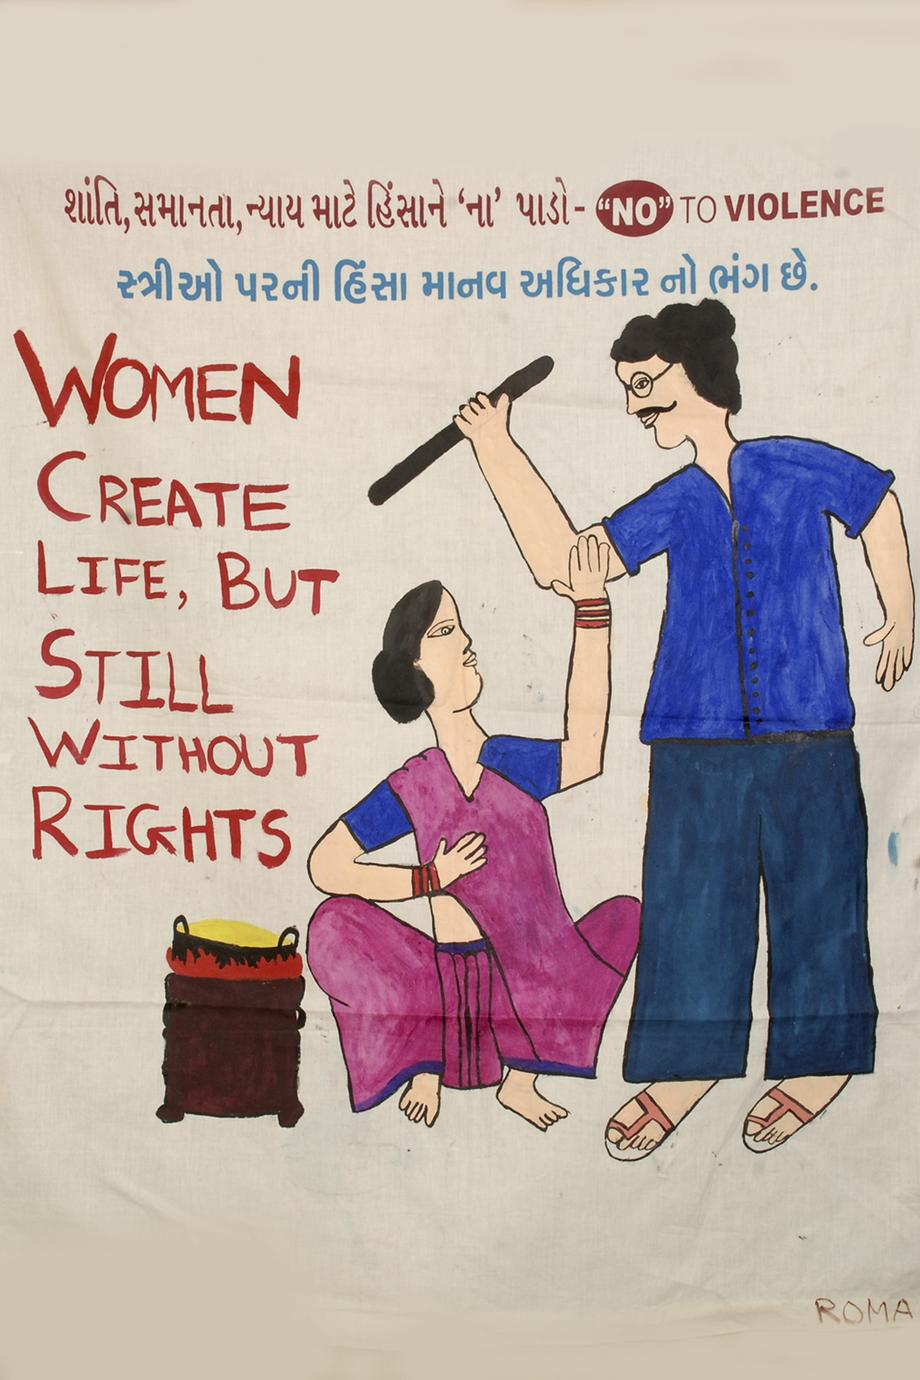 Women create lives, but still without rights